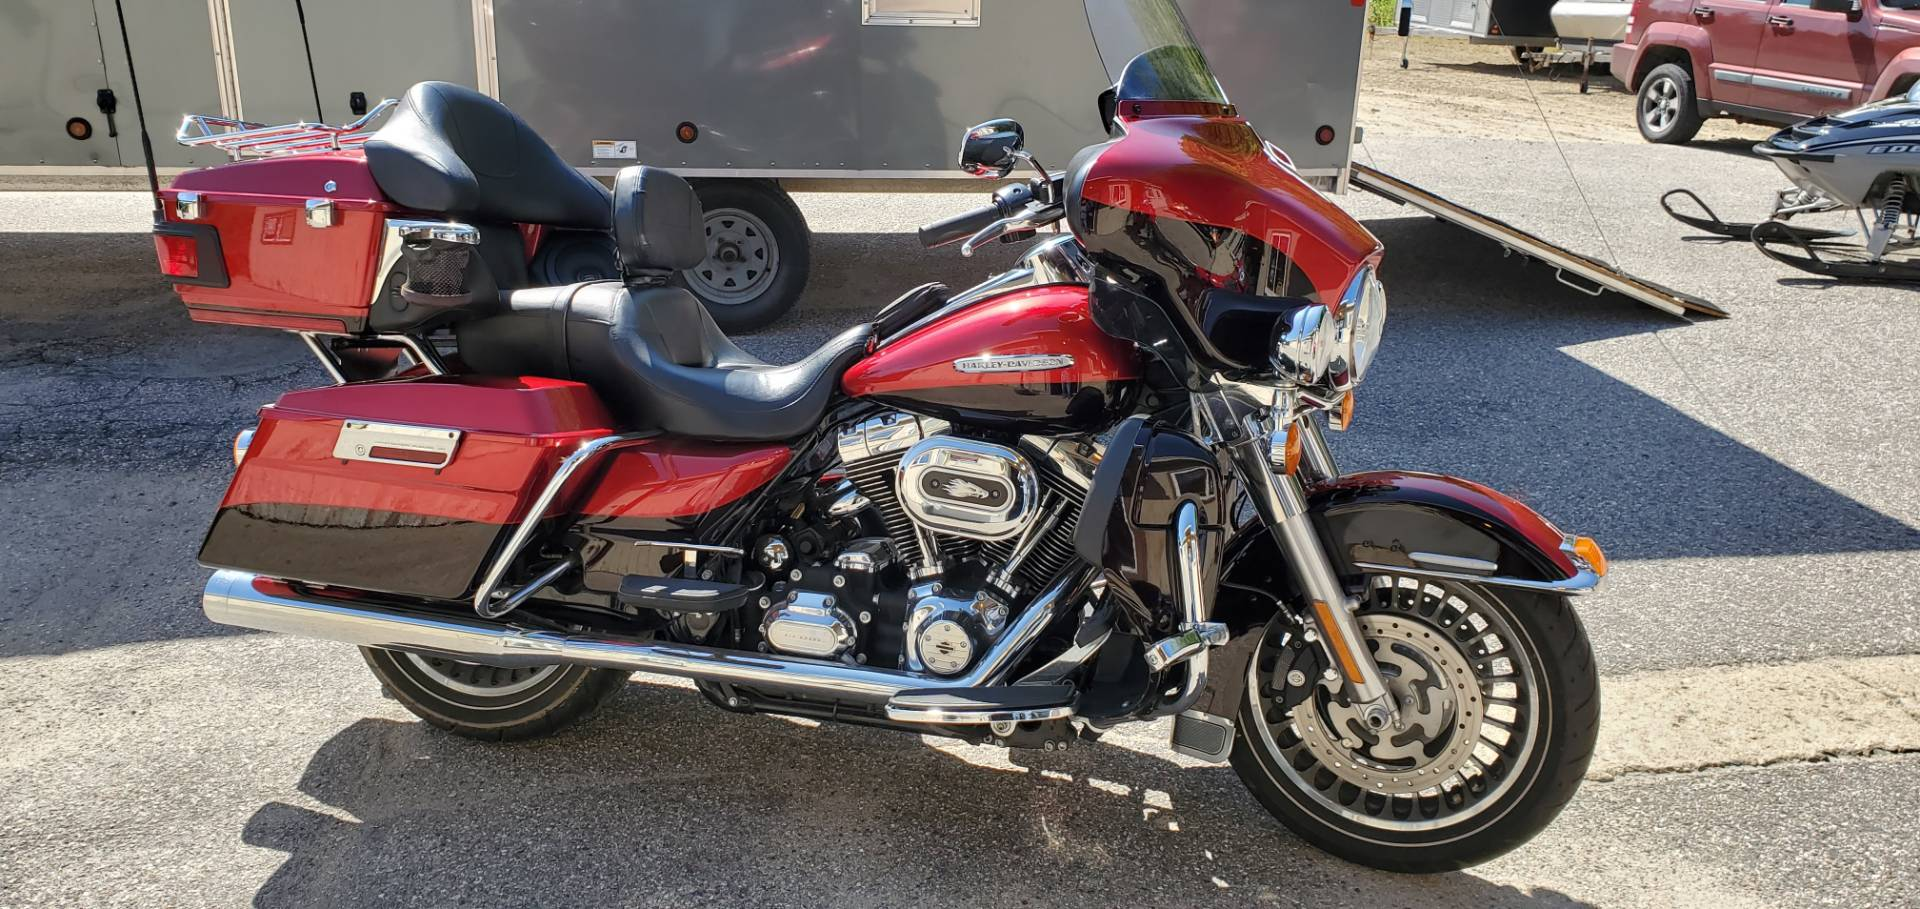 2013 Harley-Davidson Electra Glide® Ultra Limited in Tamworth, New Hampshire - Photo 1